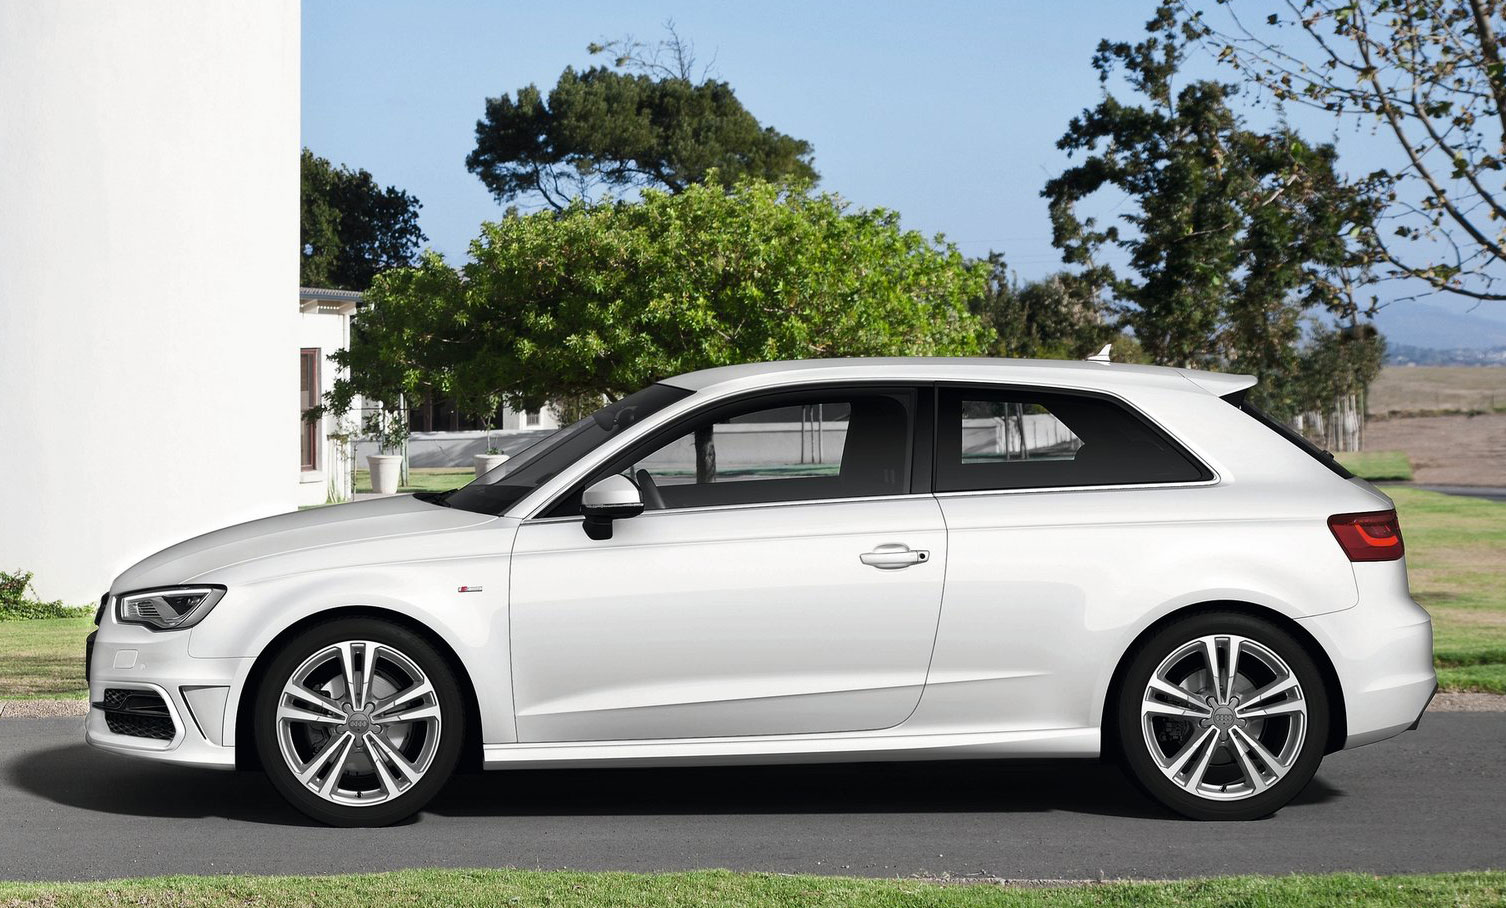 New Audi A3 Third Gen Compact Makes Geneva Debut Image 92413